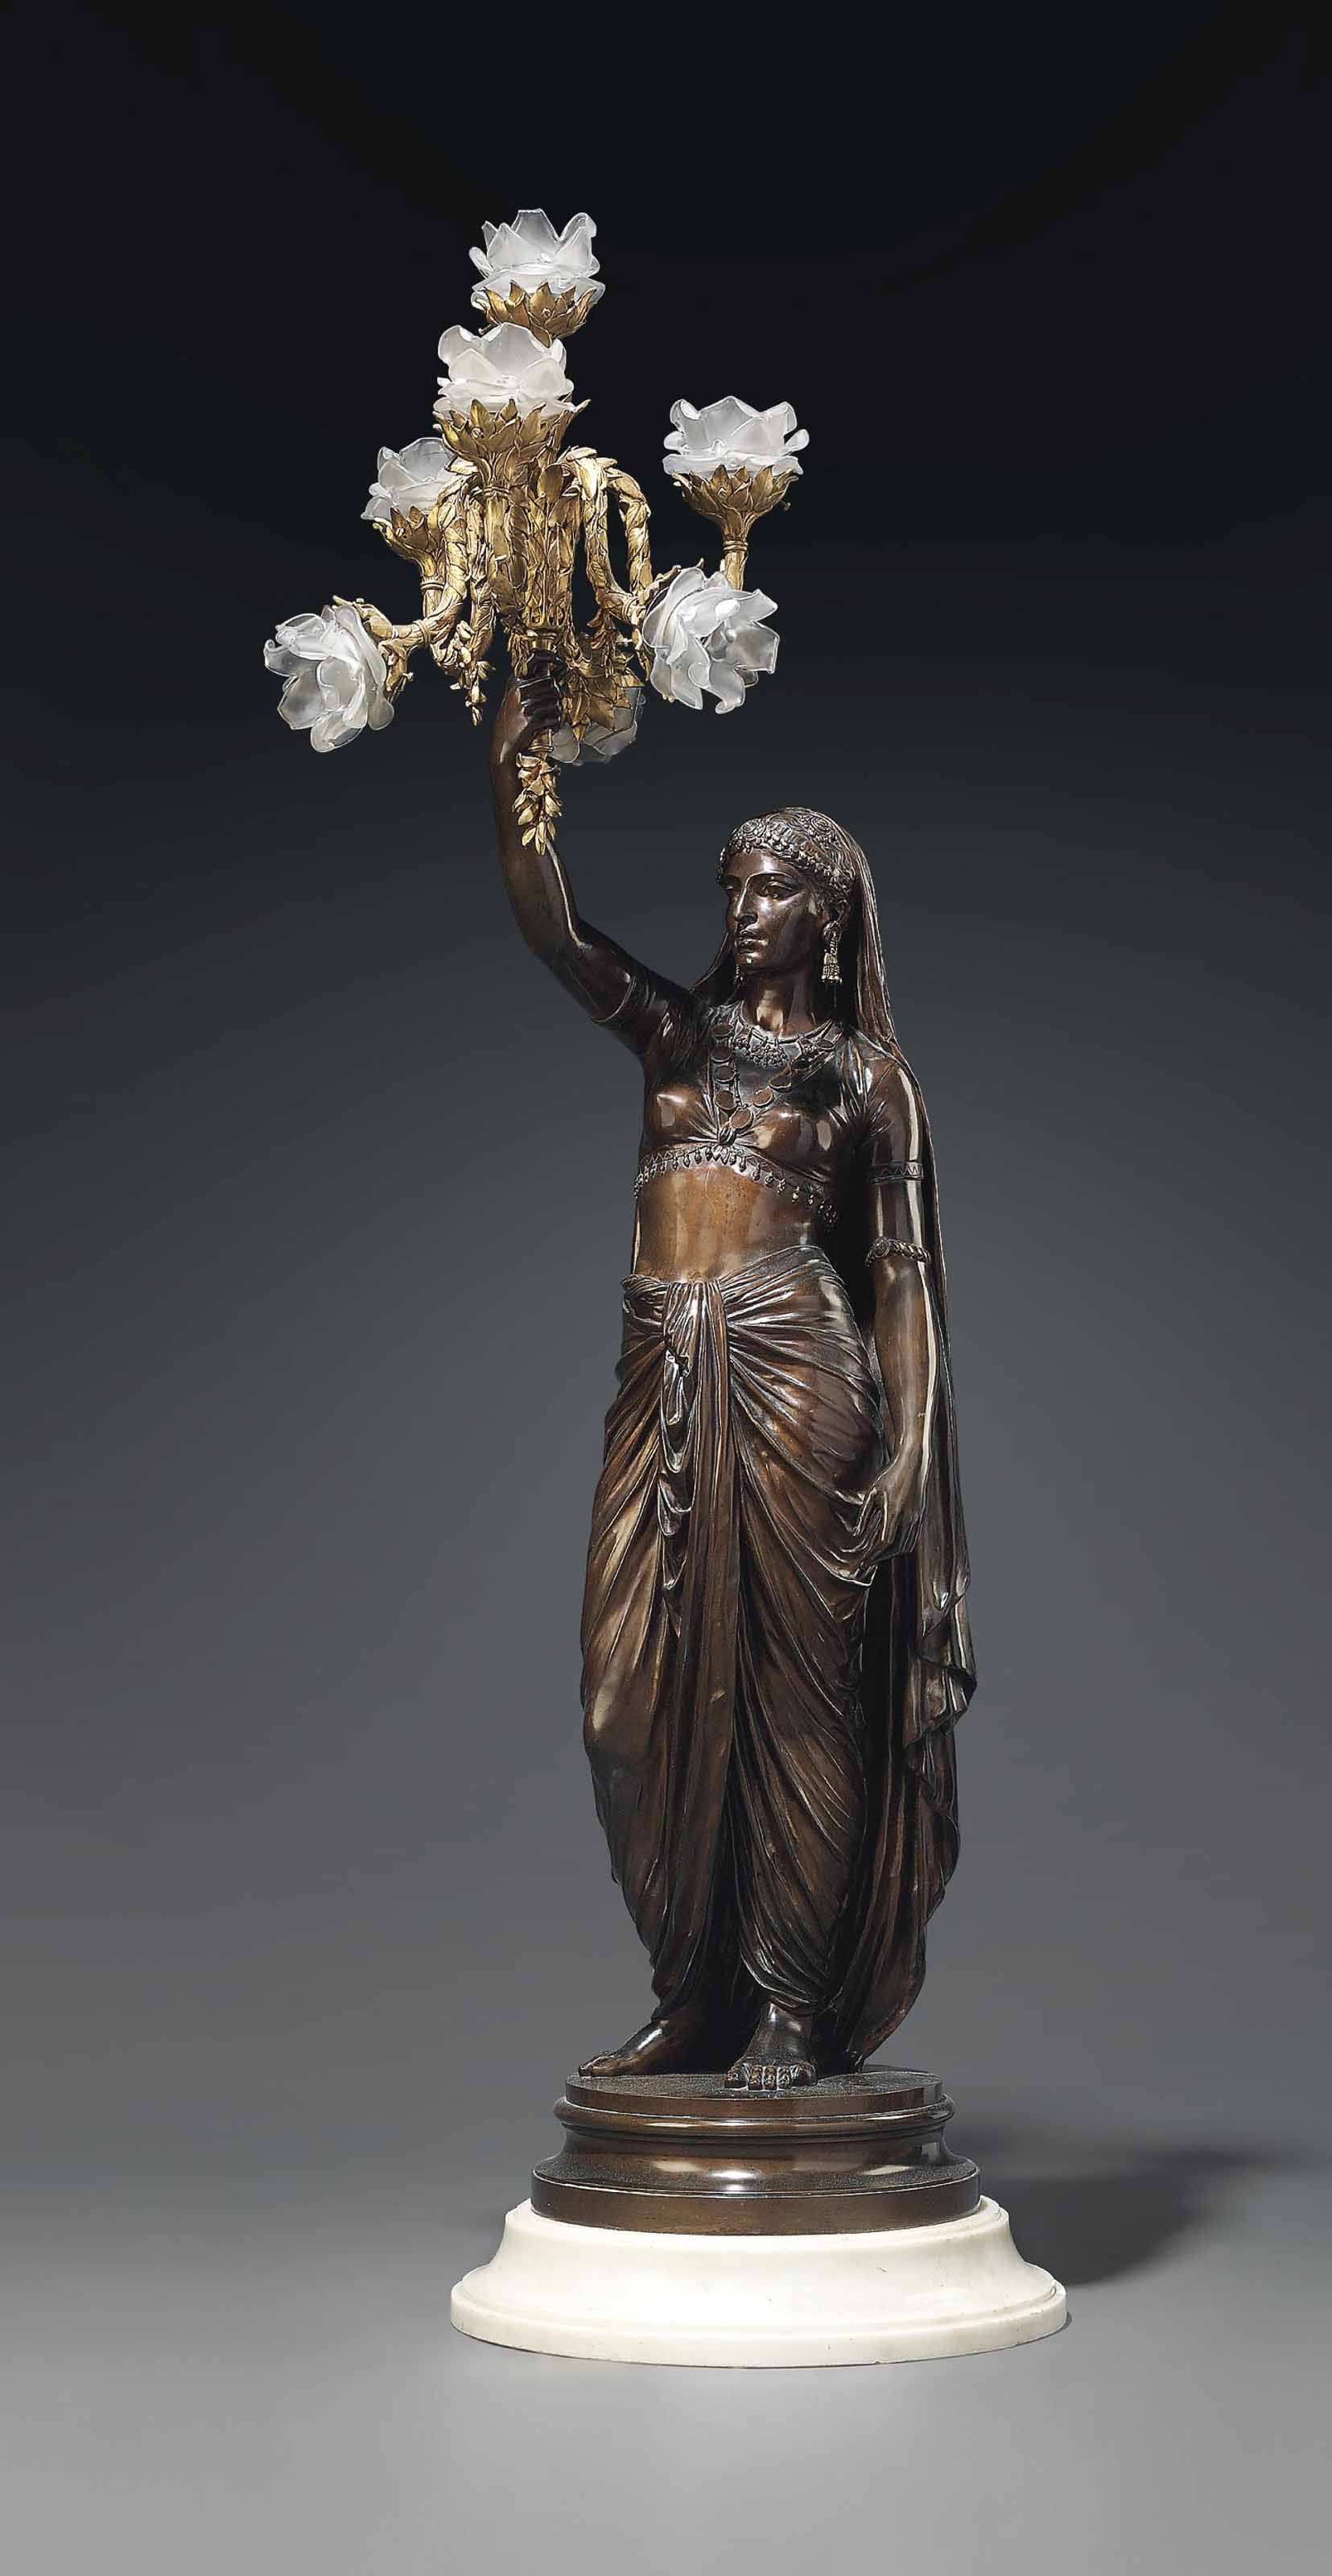 A FRENCH ORMOLU AND PATINATED BRONZE FIGURAL TORCHERE ENTITLED 'PERSANE'